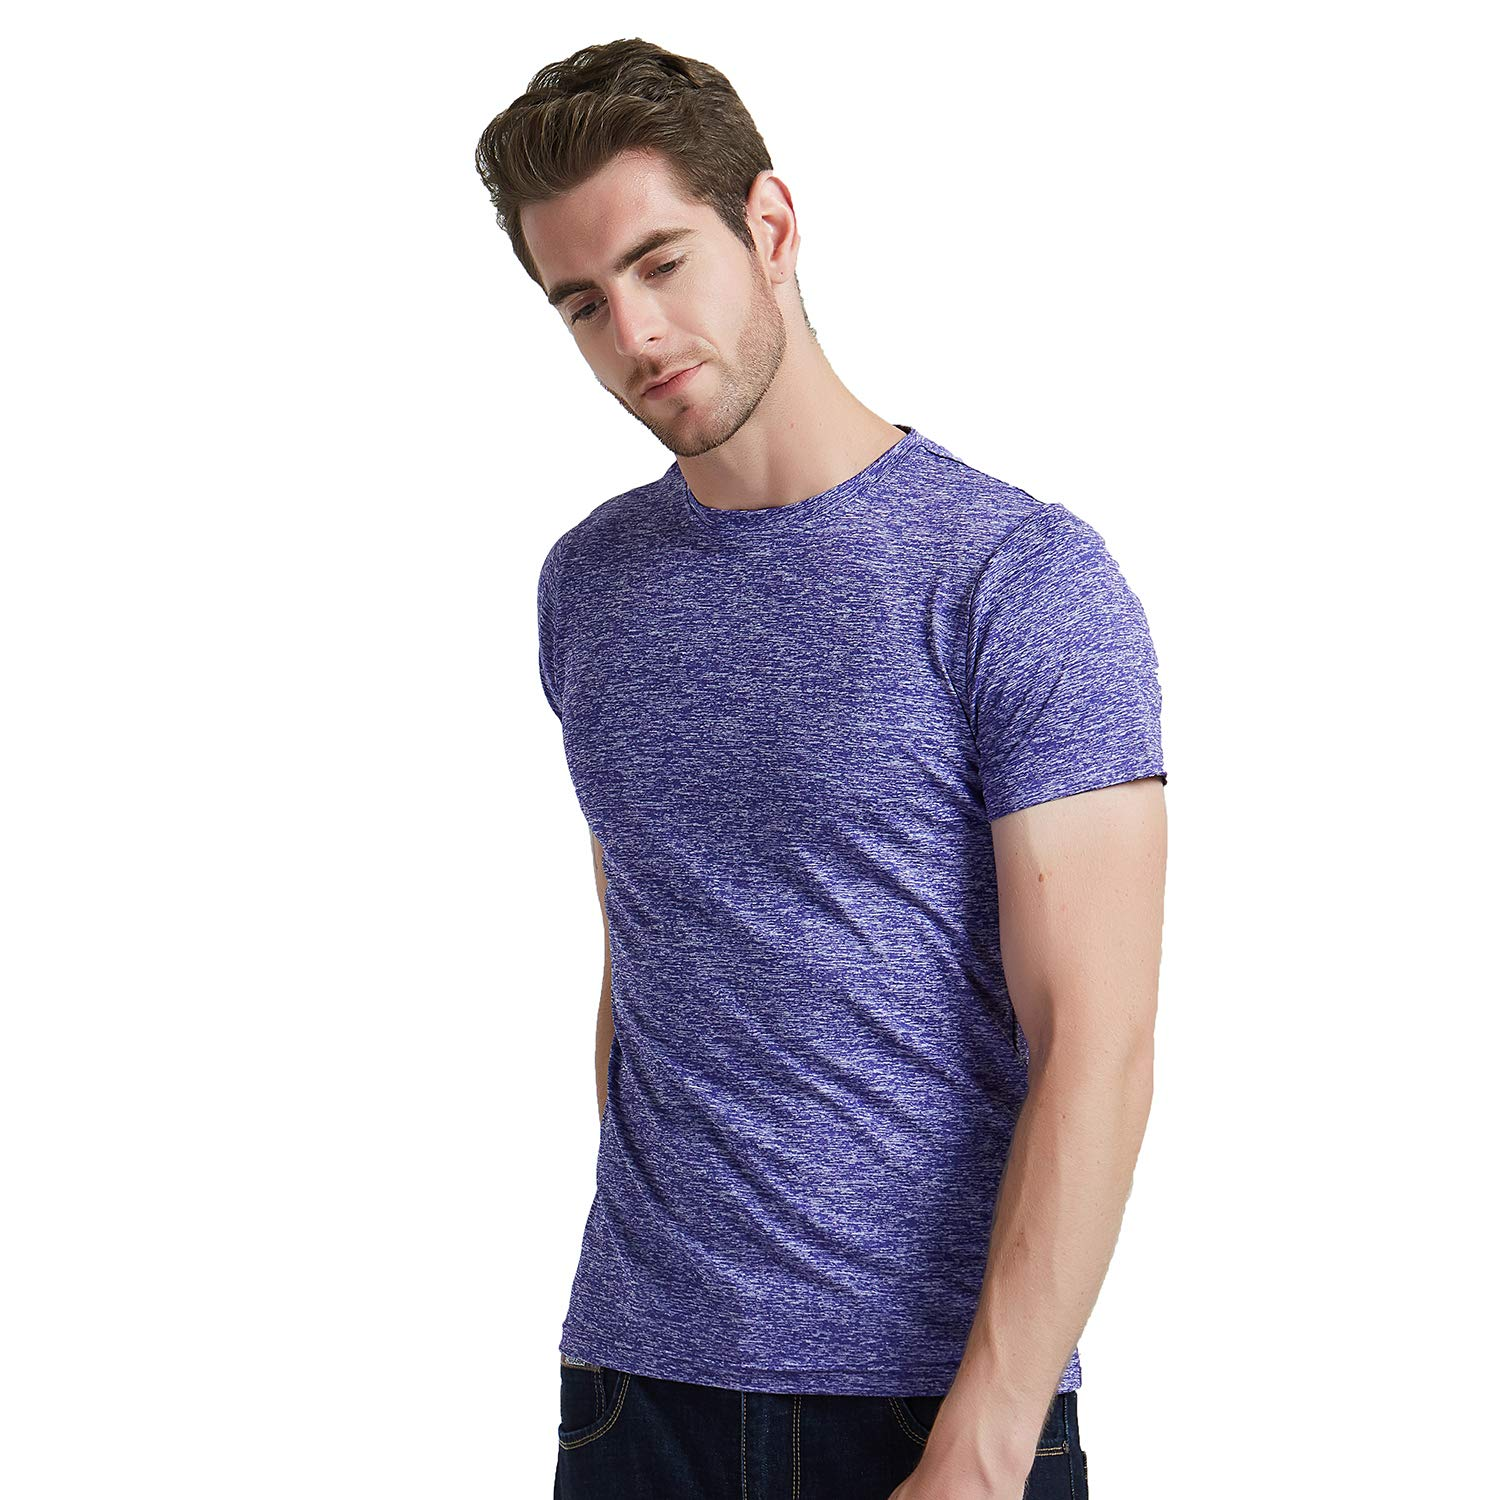 SAGO Men\'s Plain Blank T Shirts Casual Fitted Workout Running Short Sleeve Crew Neck Plus Size Cotton Polyester Spandex(Purple,XXL)